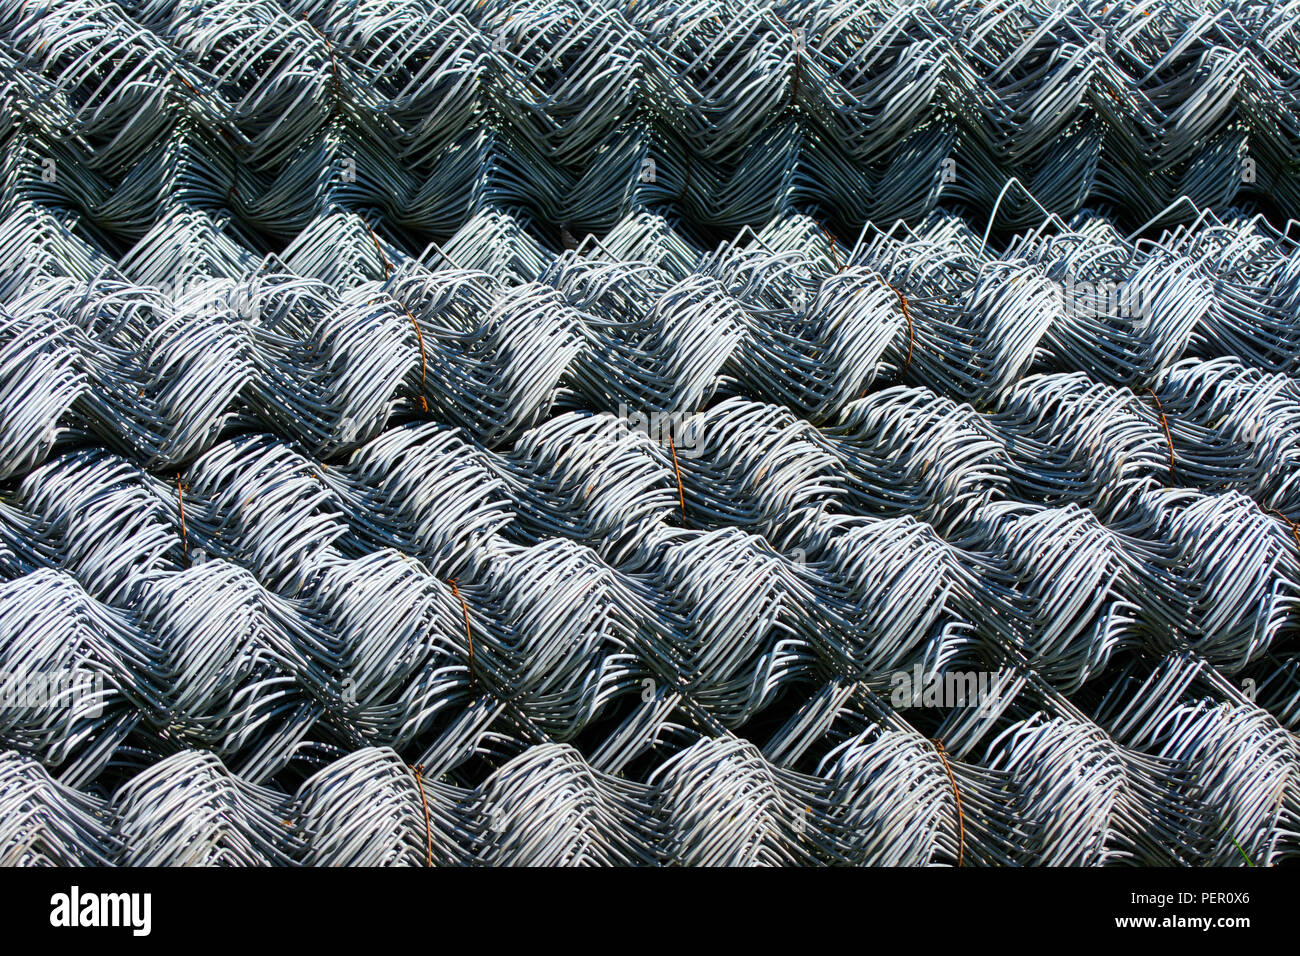 Wire Mesh Grille Stock Photos & Wire Mesh Grille Stock Images - Alamy